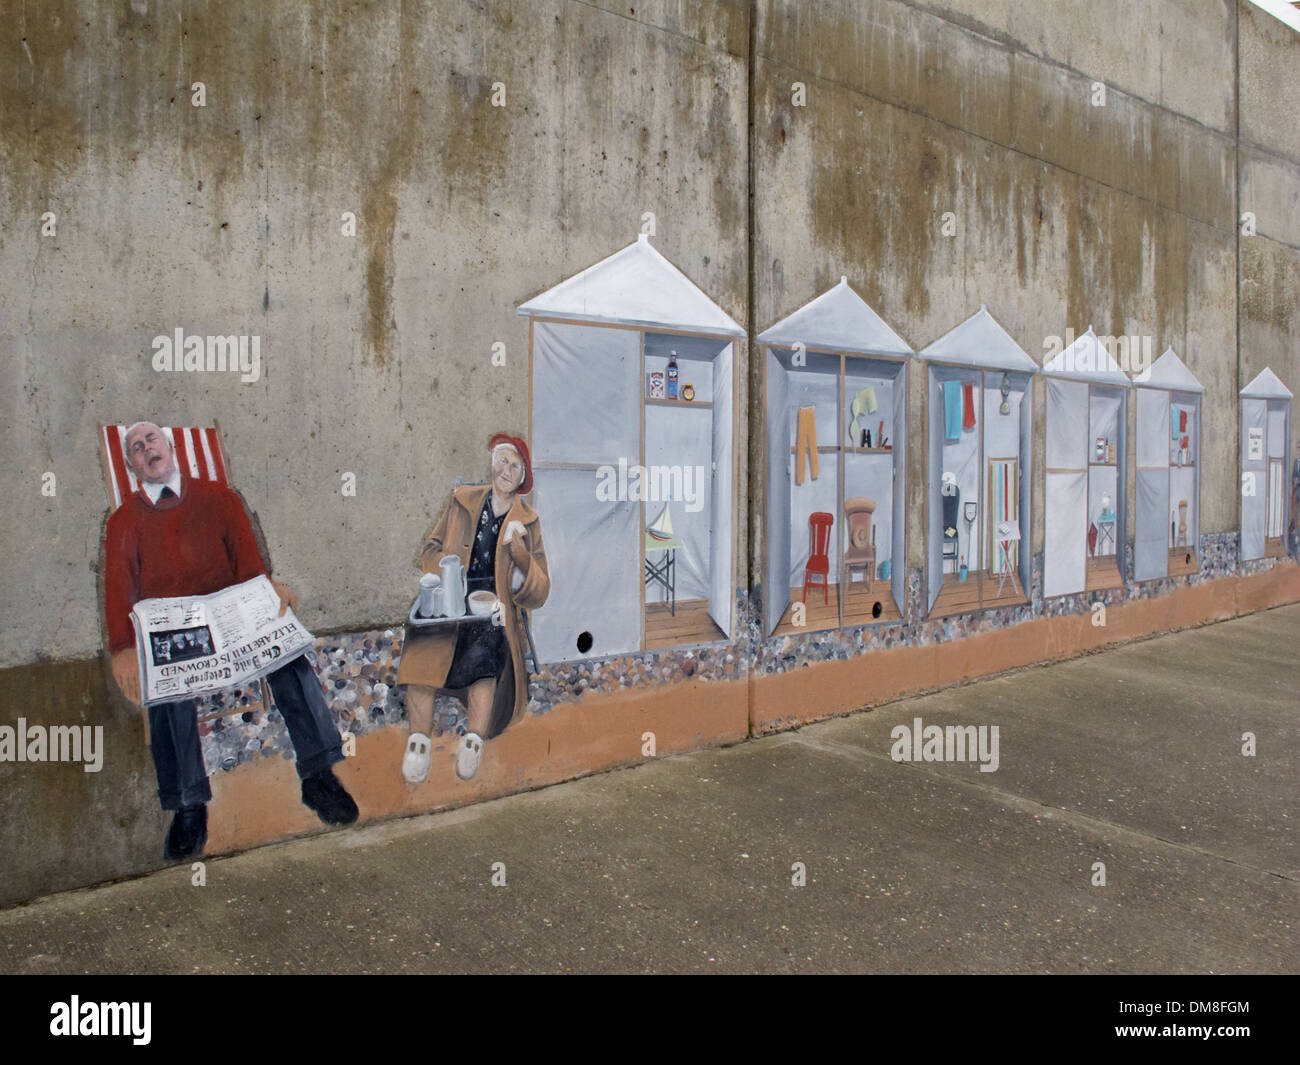 Sea wall art at Sheringham North Norfolk England. & Sea wall art at Sheringham North Norfolk England Stock Photo ...